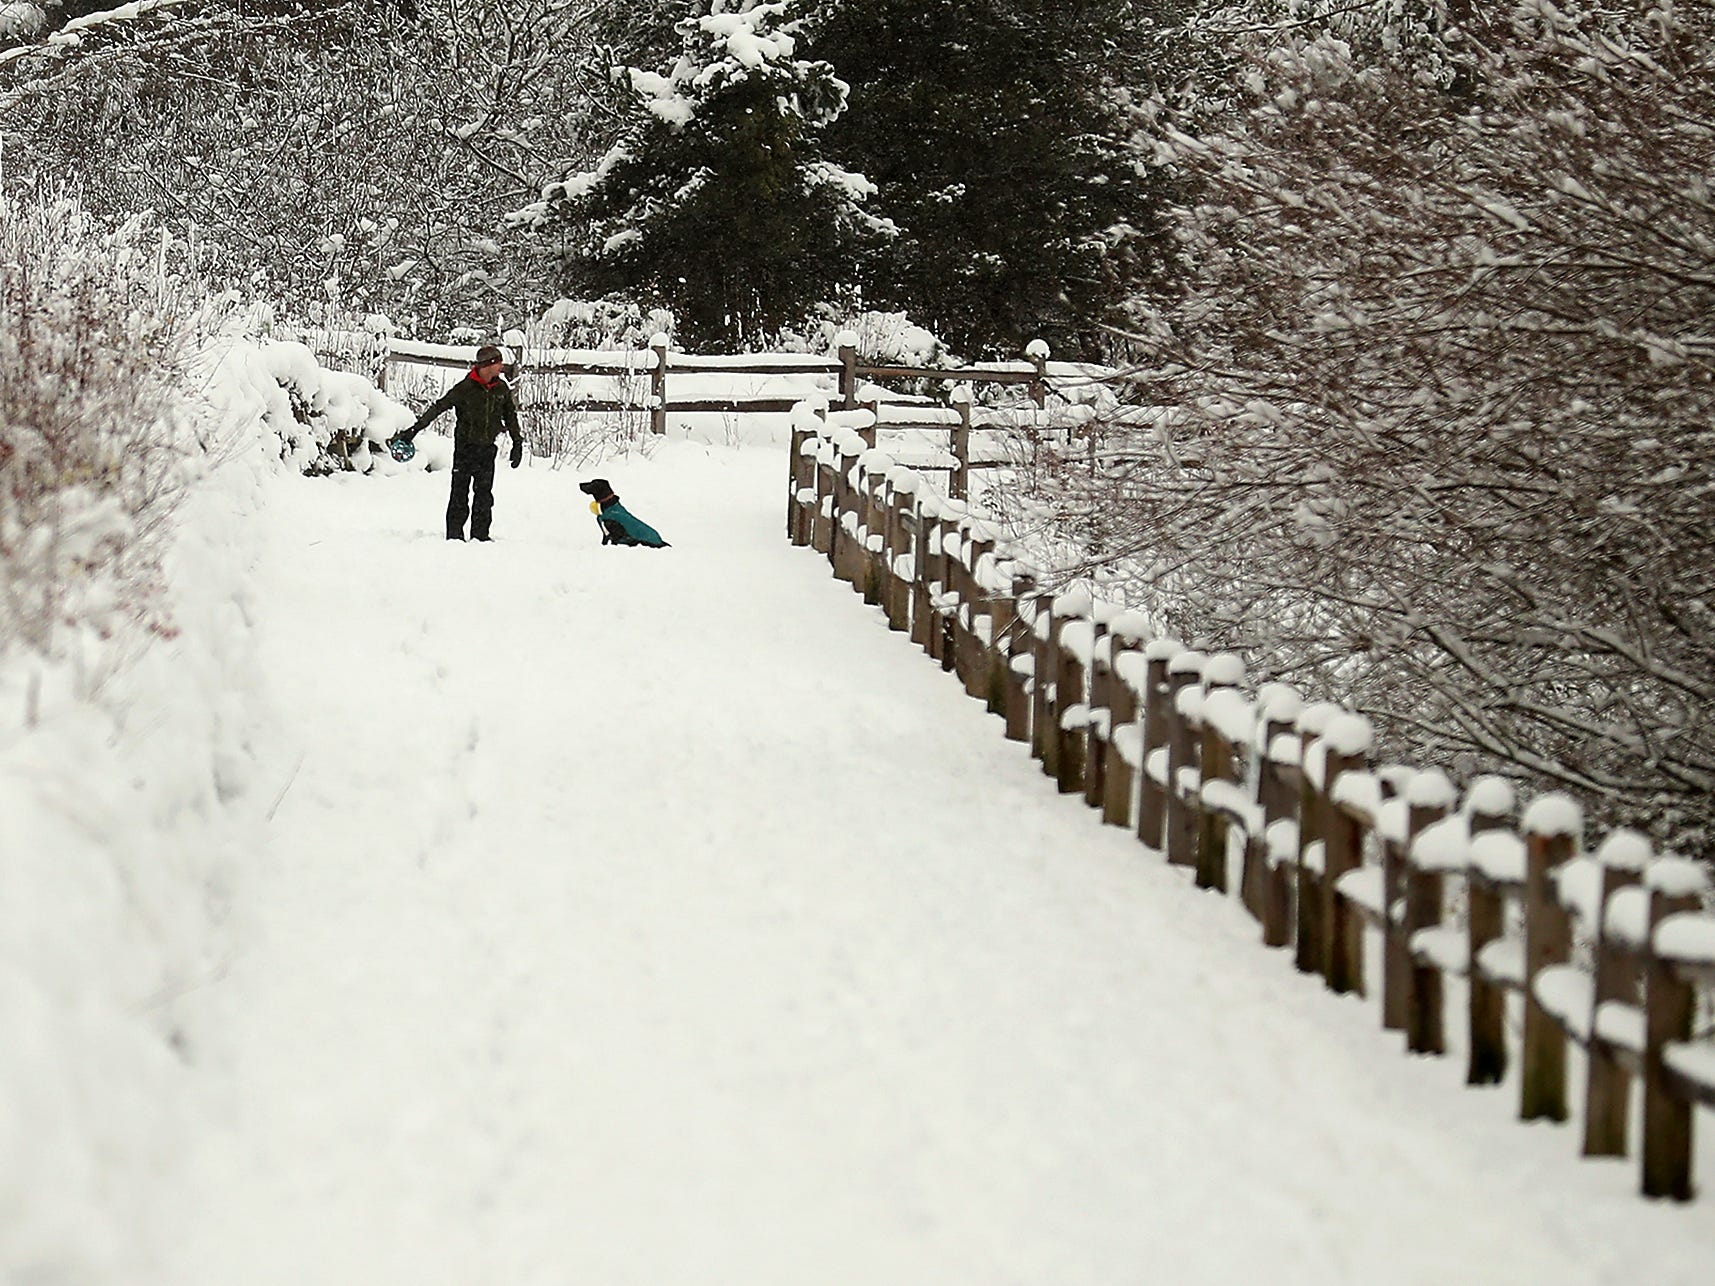 Bryan Schmitt gets ready to toss his dog Kona's ball down the trail as they play in the snow at the Clear Creek Trail in Silverdale on a snowy Monday, February 11, 2019.